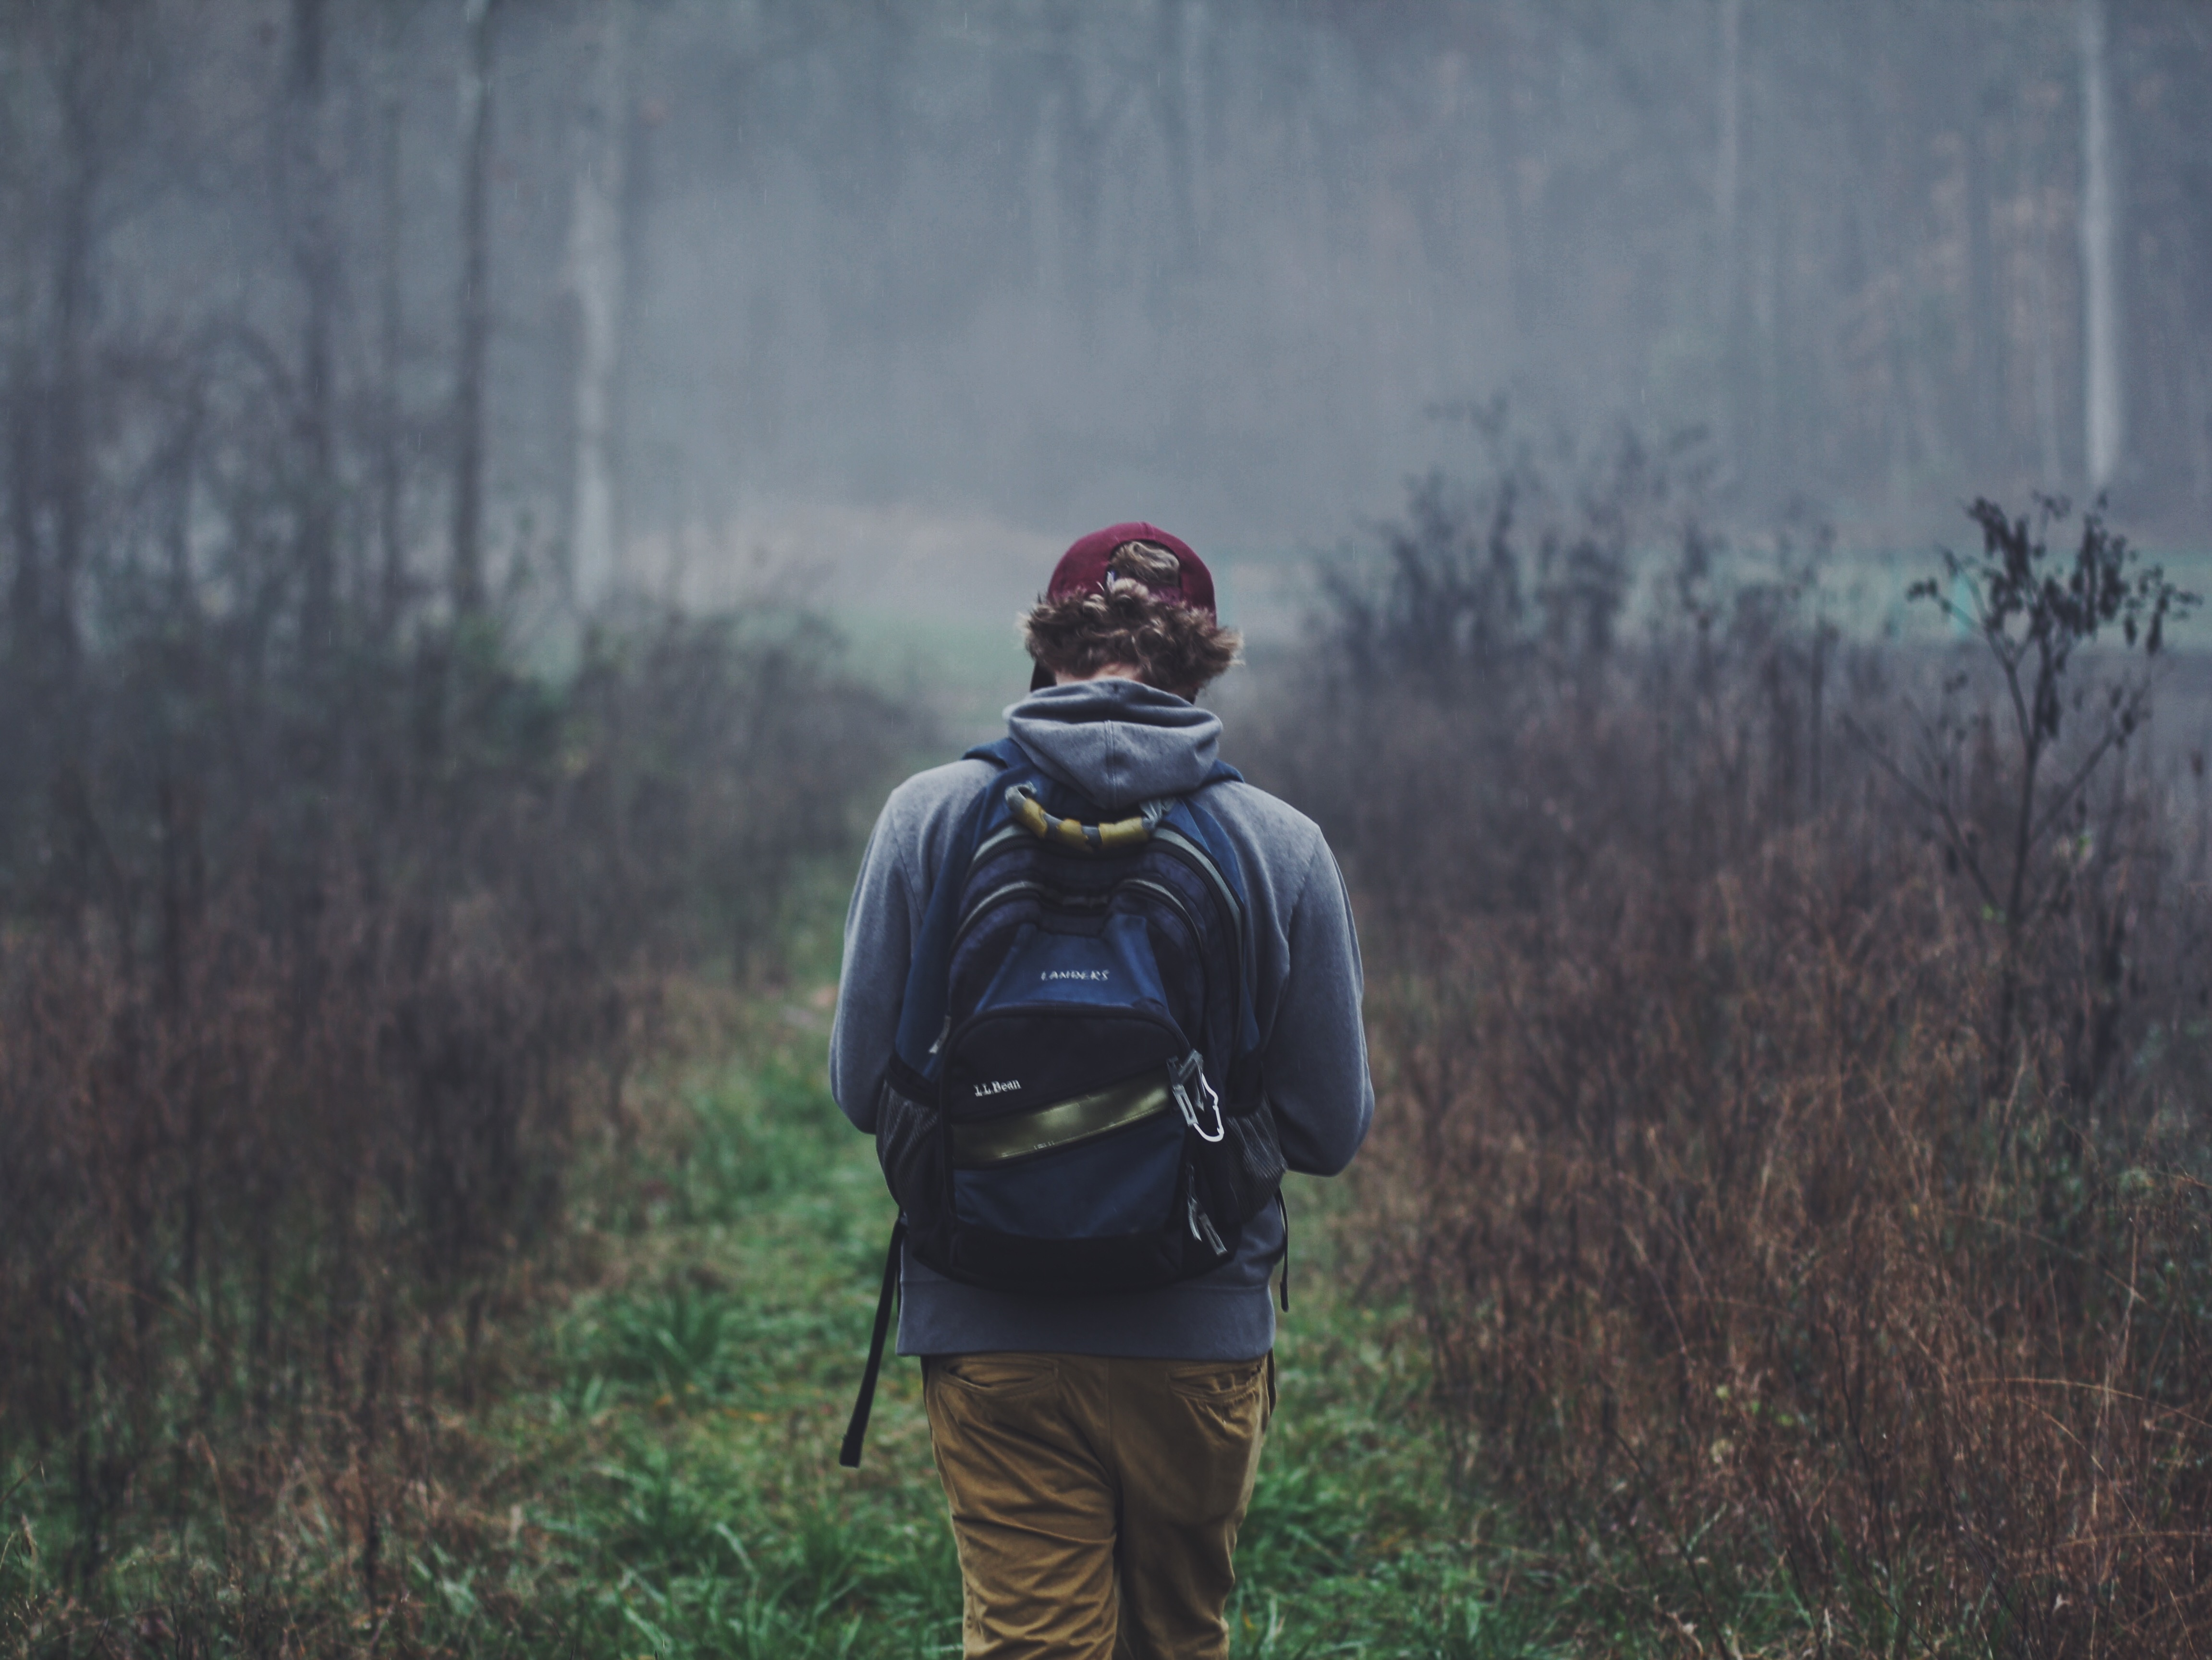 boss-fight-free-high-quality-stock-images-photos-photography-man-forest-backpack